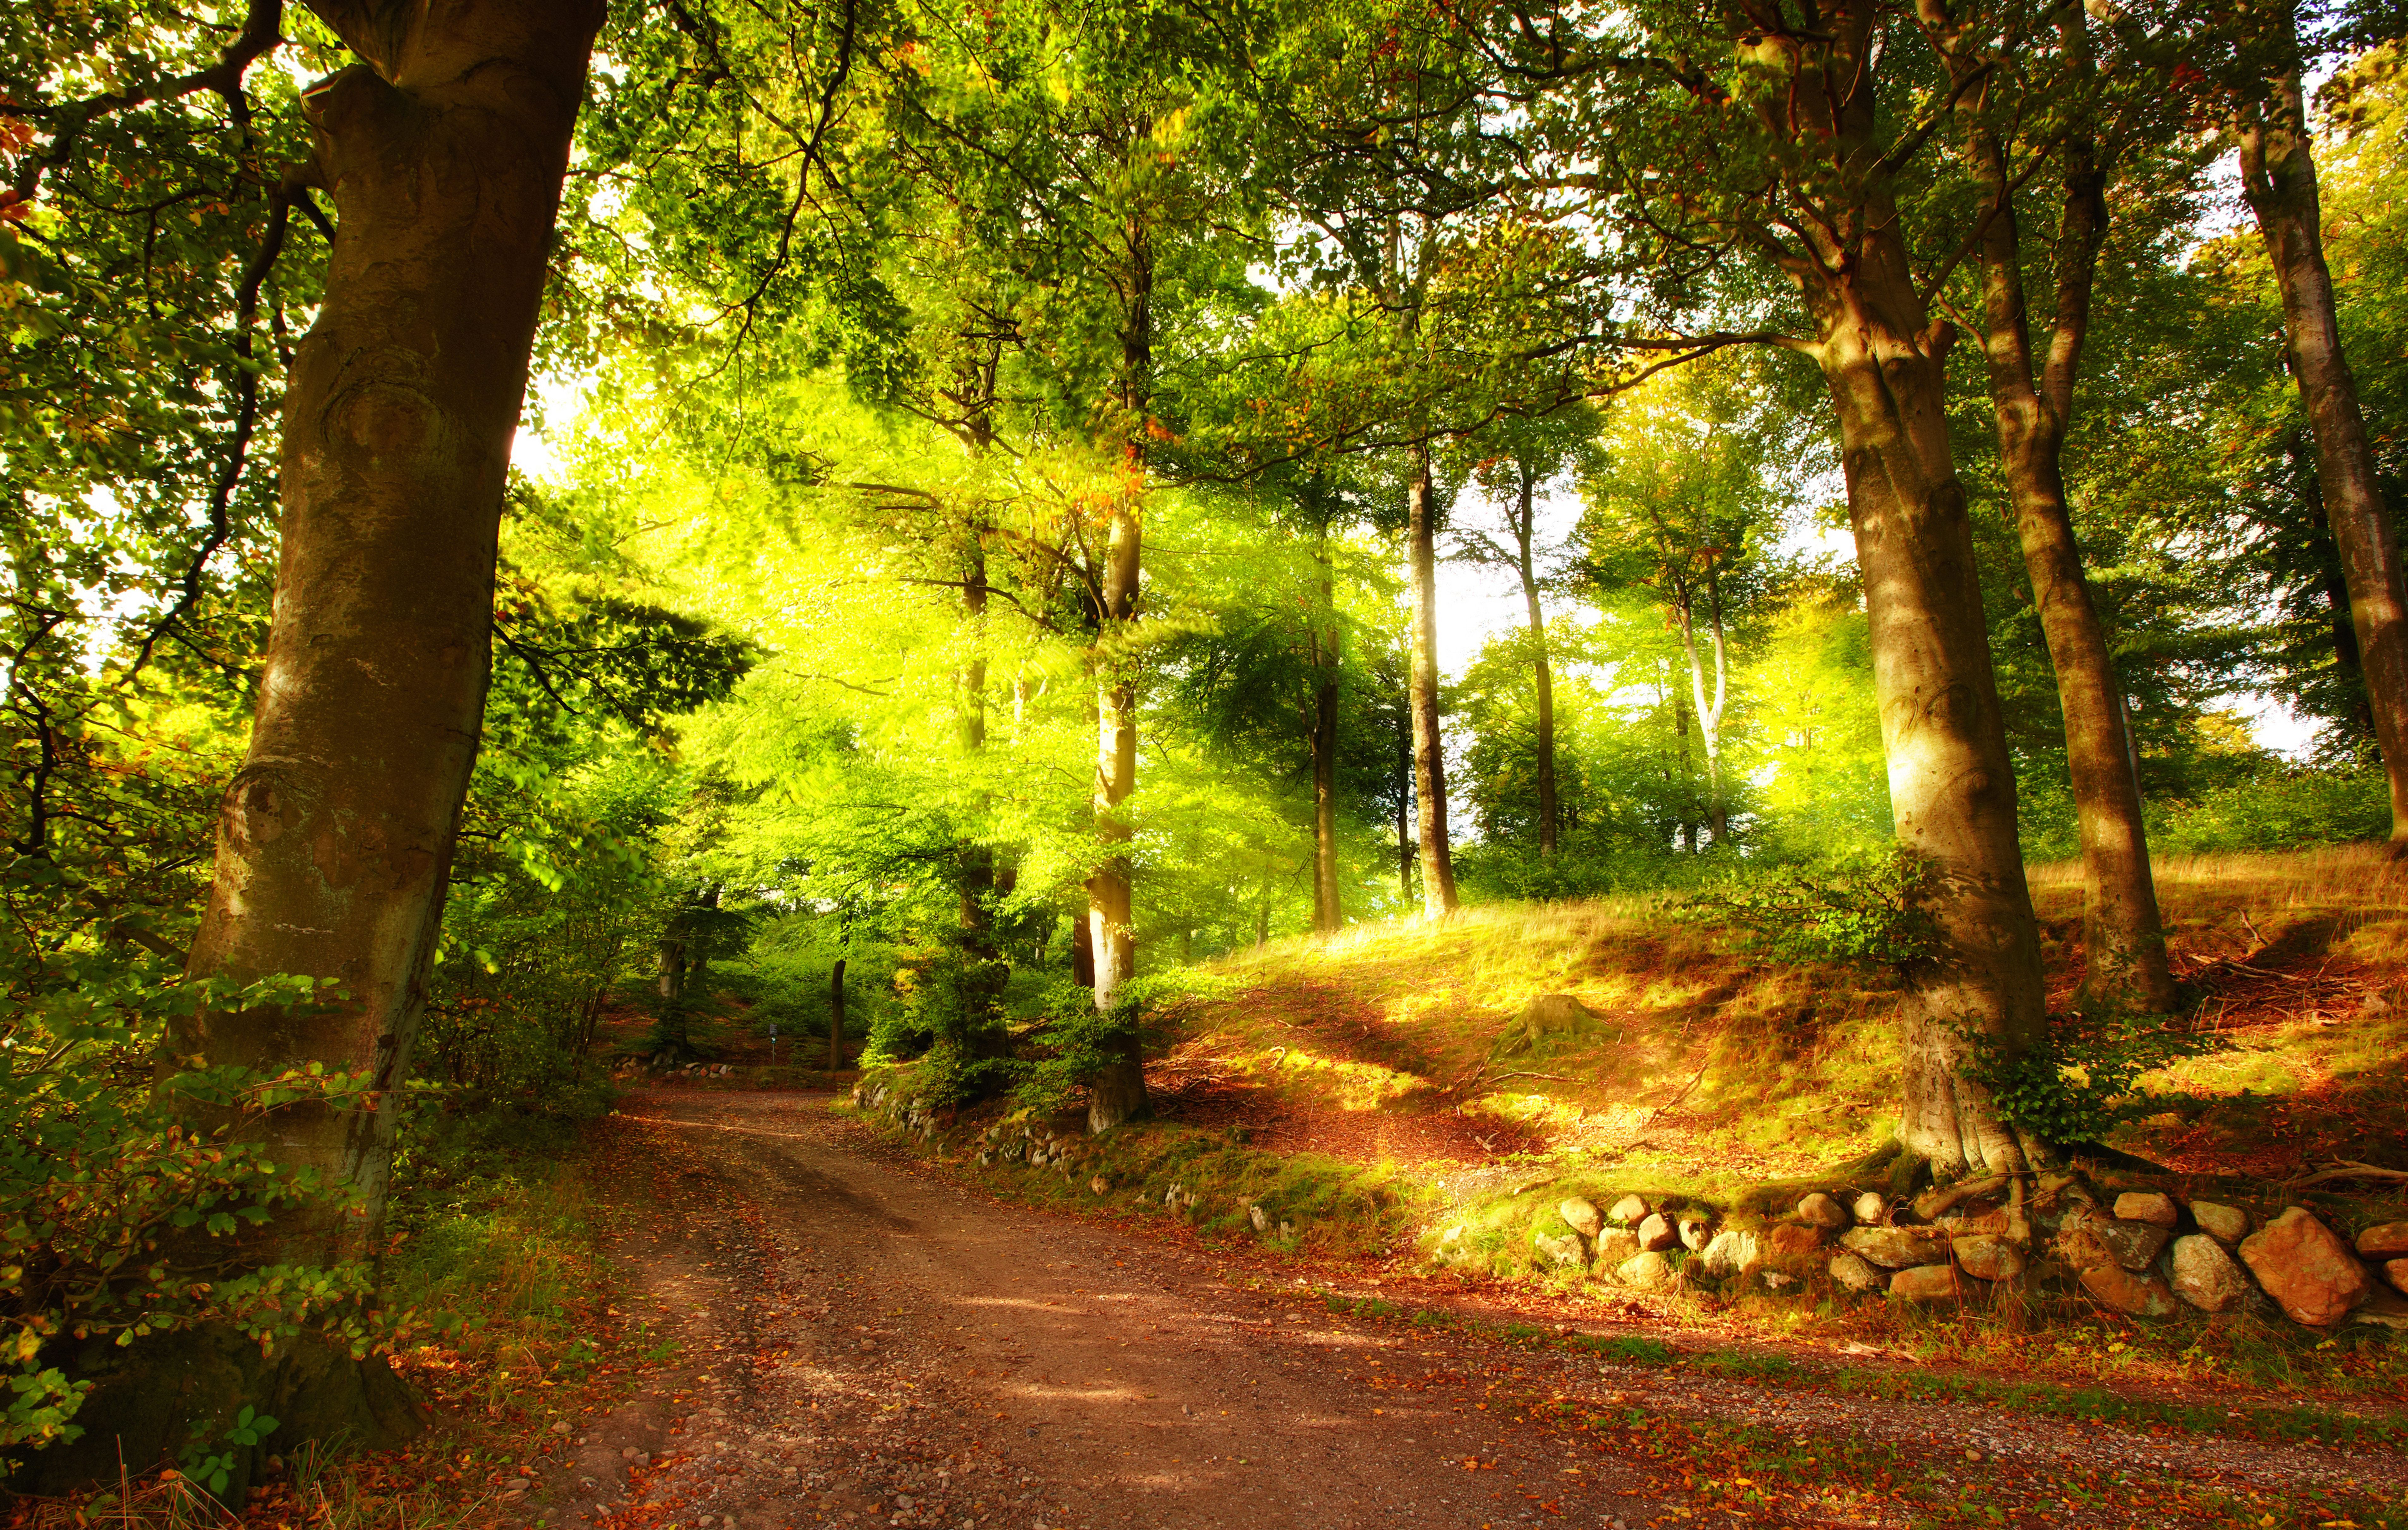 Summer Forest Images Wallpapers For Desktop 7622x4842 px